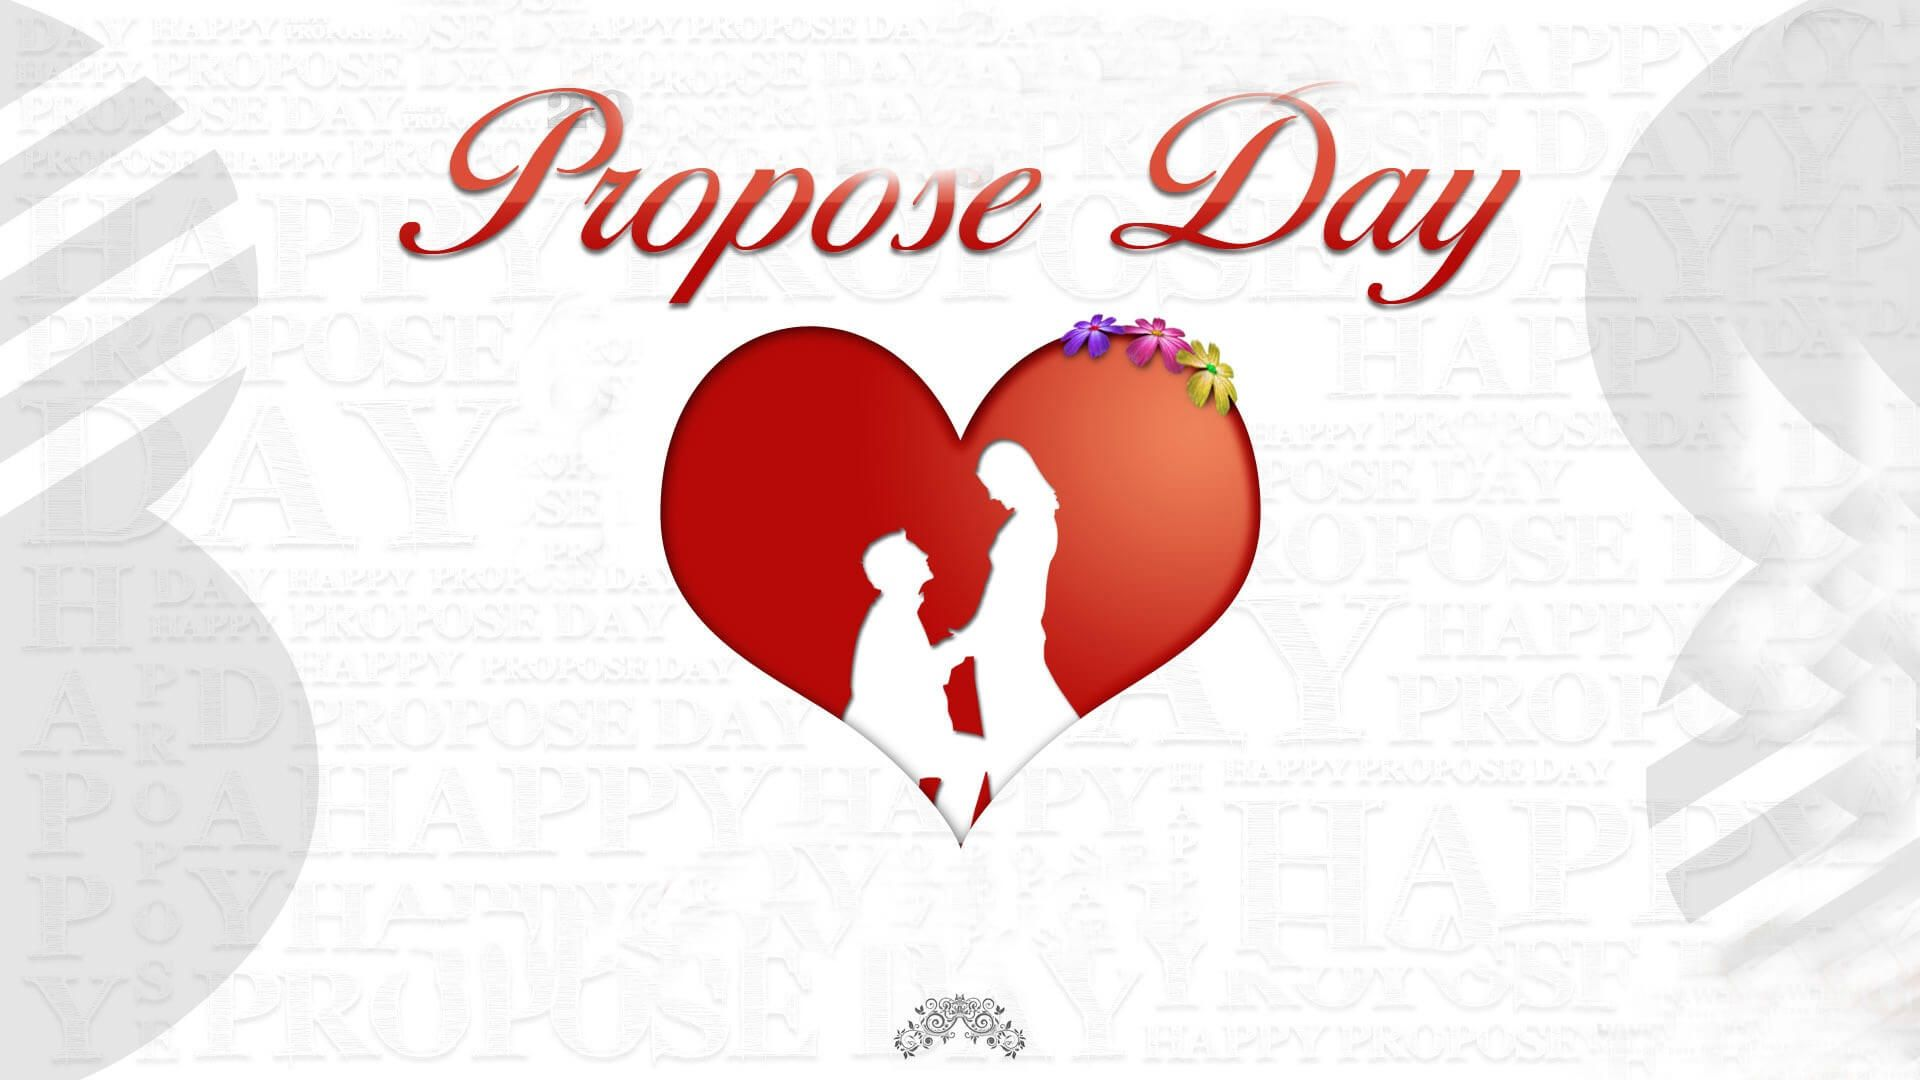 Propose Day Wallpapers for Mobile & Desktop